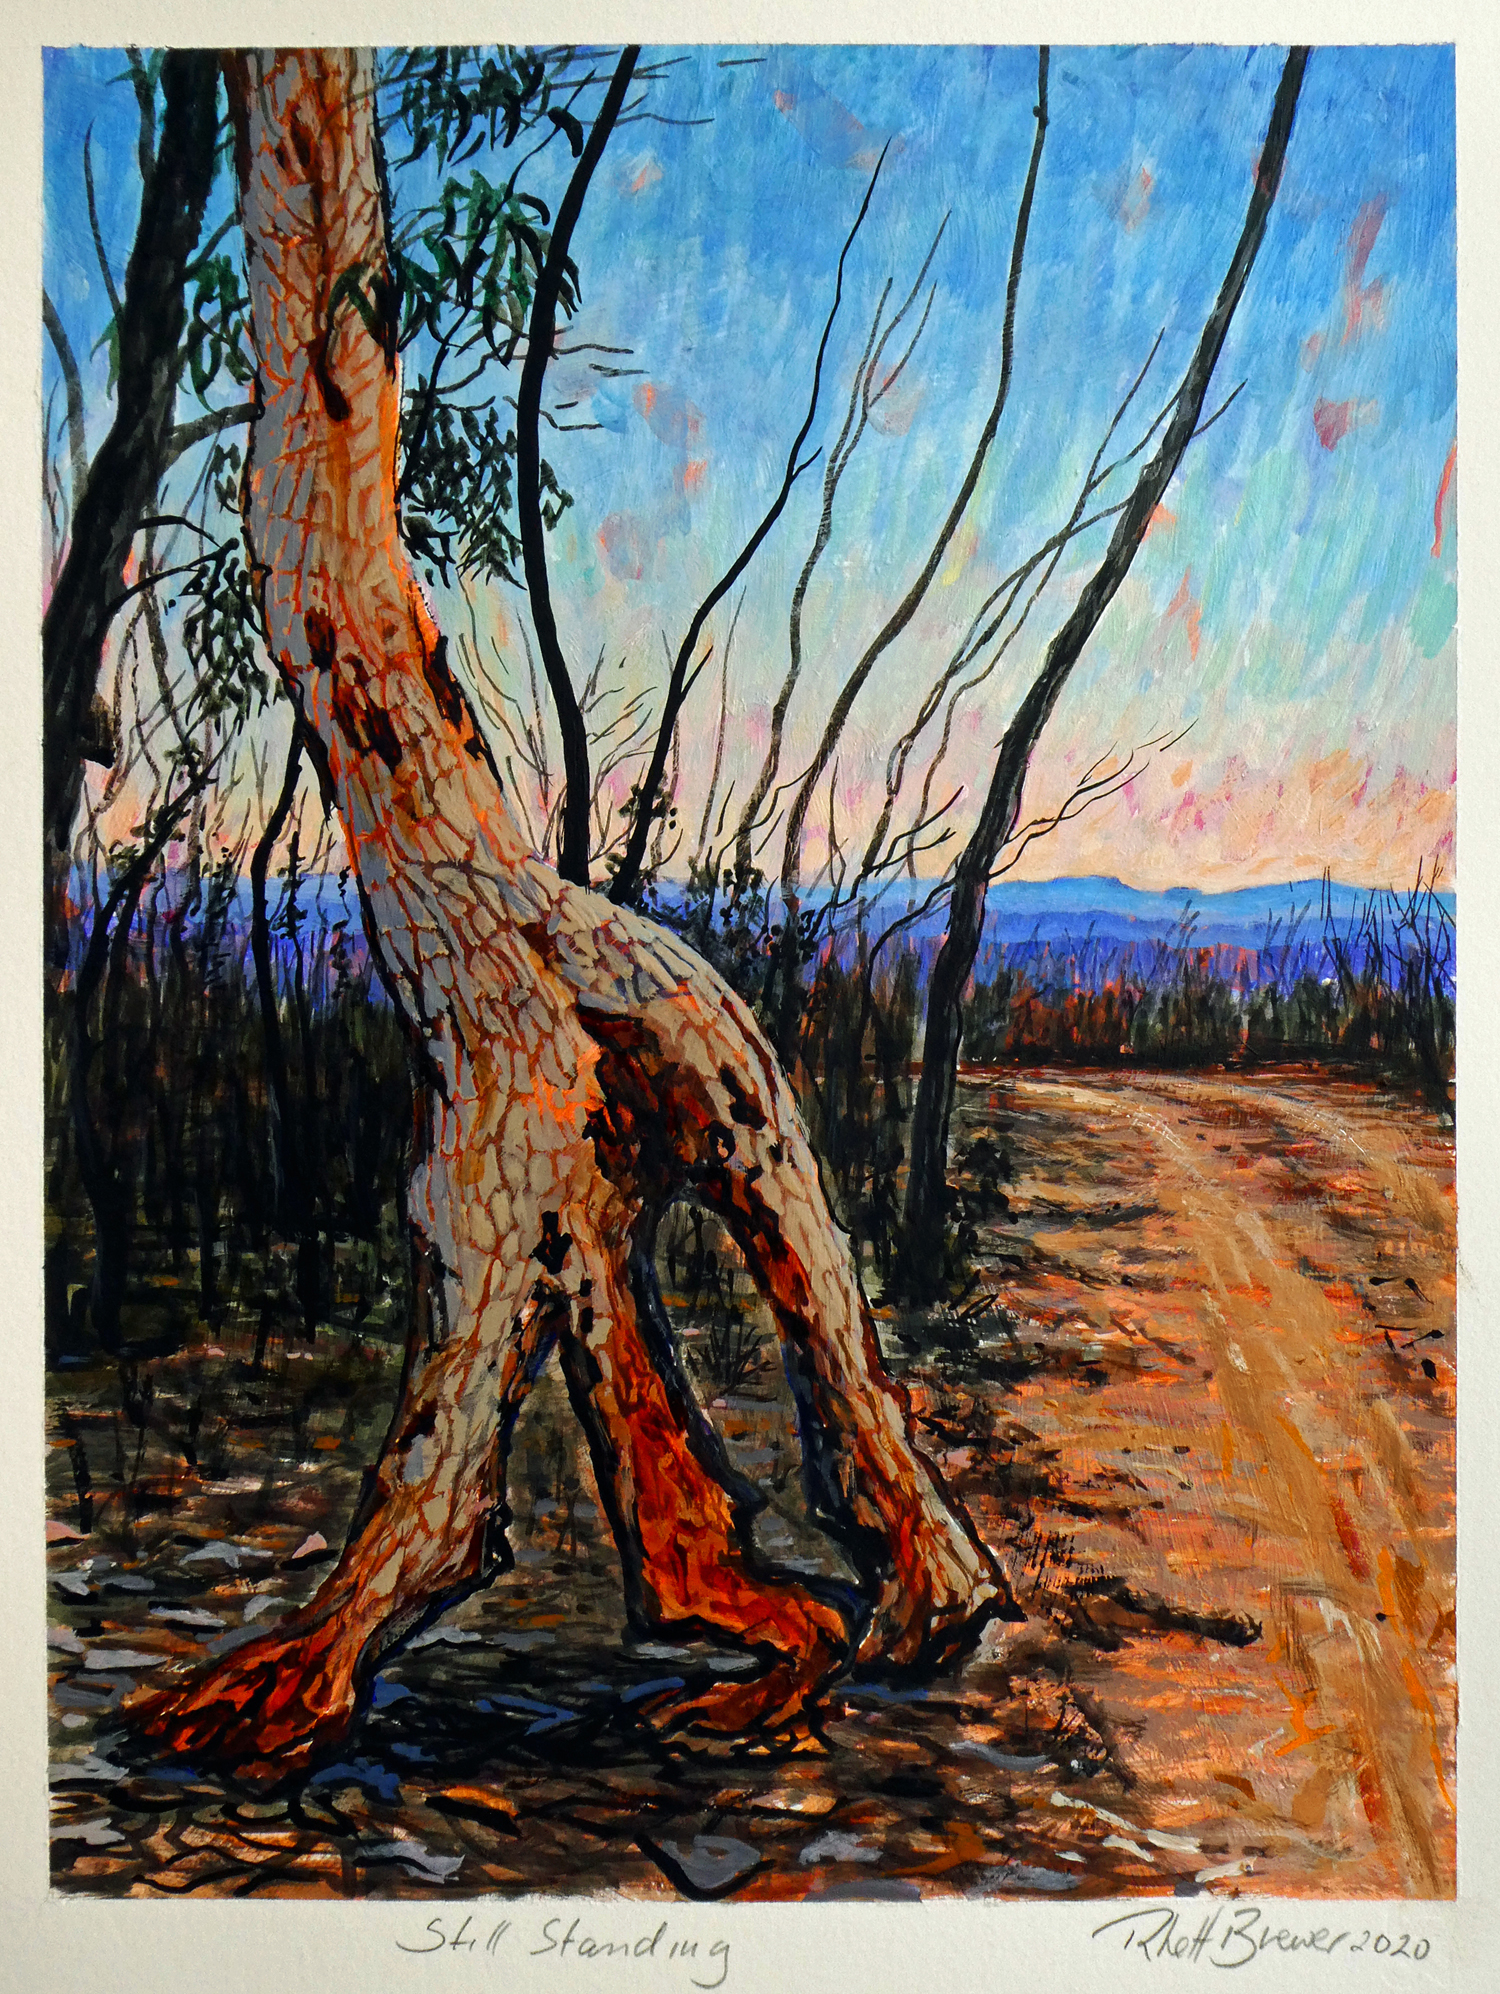 Still Standing,  39cm x 28cm, acrylic on 640 g.s.m. watercolour paper, 2020